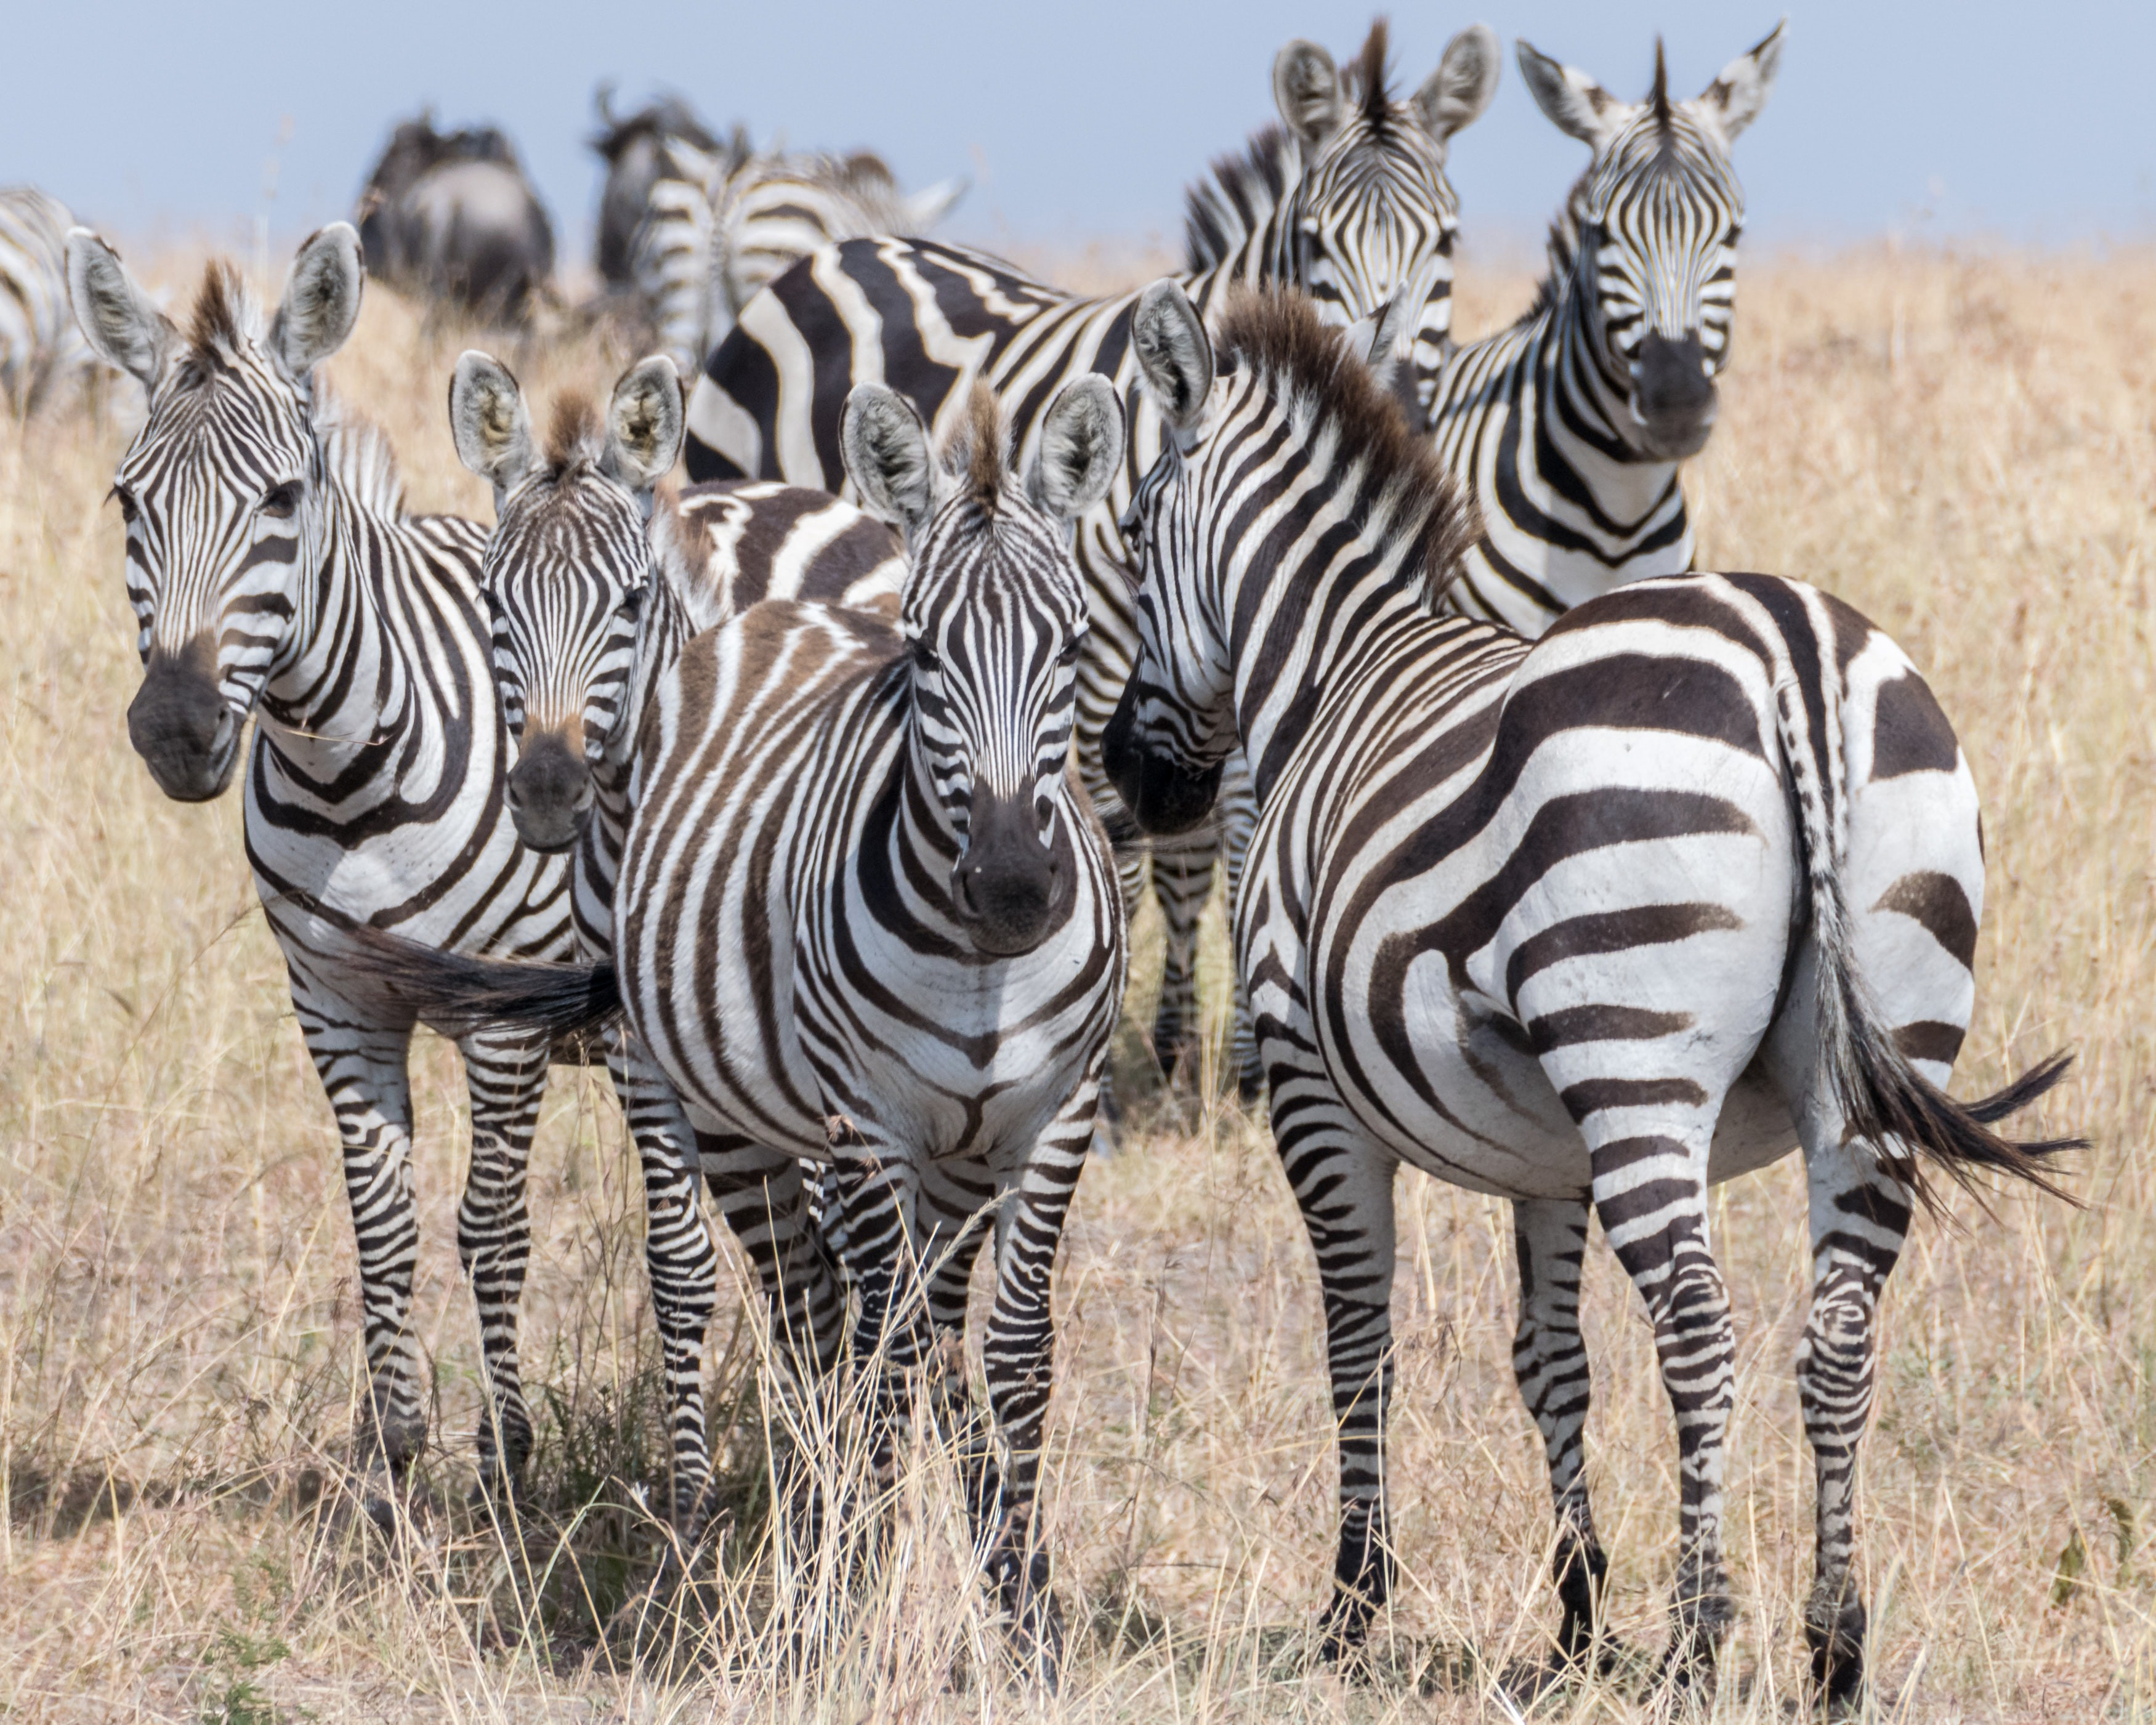 A group of zebras standing together in a field